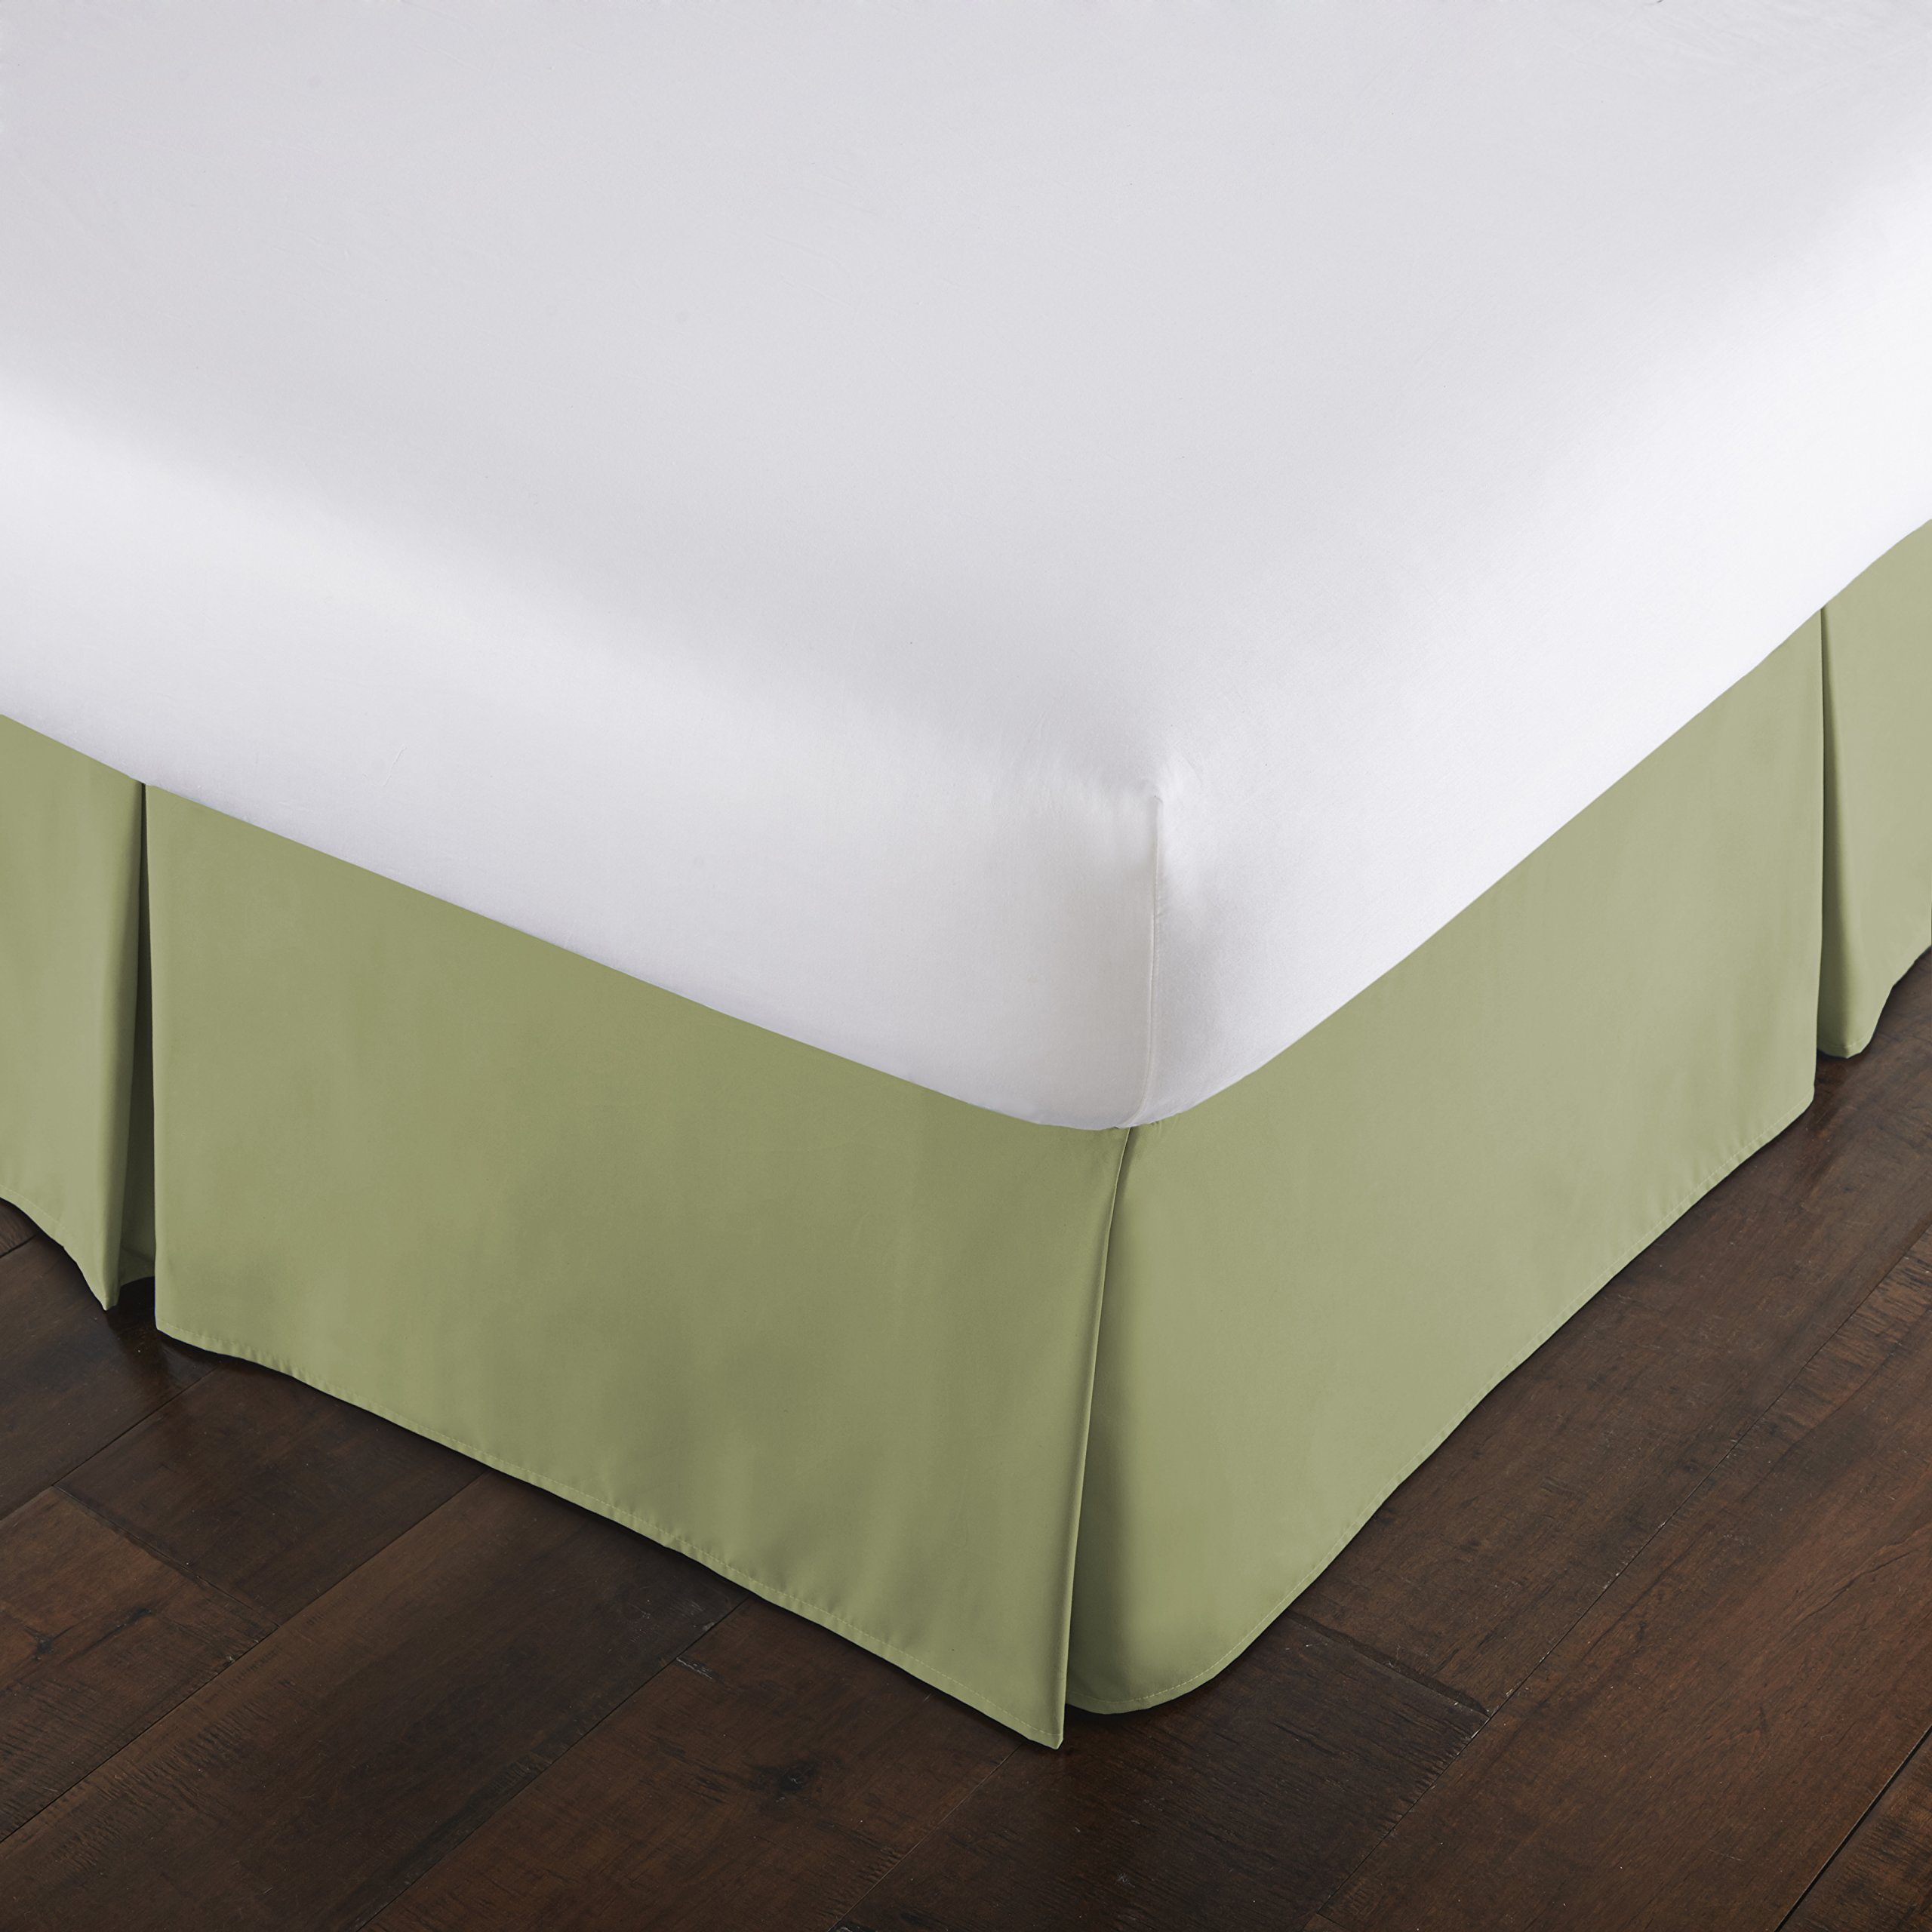 Southshore Fine Linens - VILANO Springs - 15 inch Drop Pleated Bed Skirt, Sage Green, California King